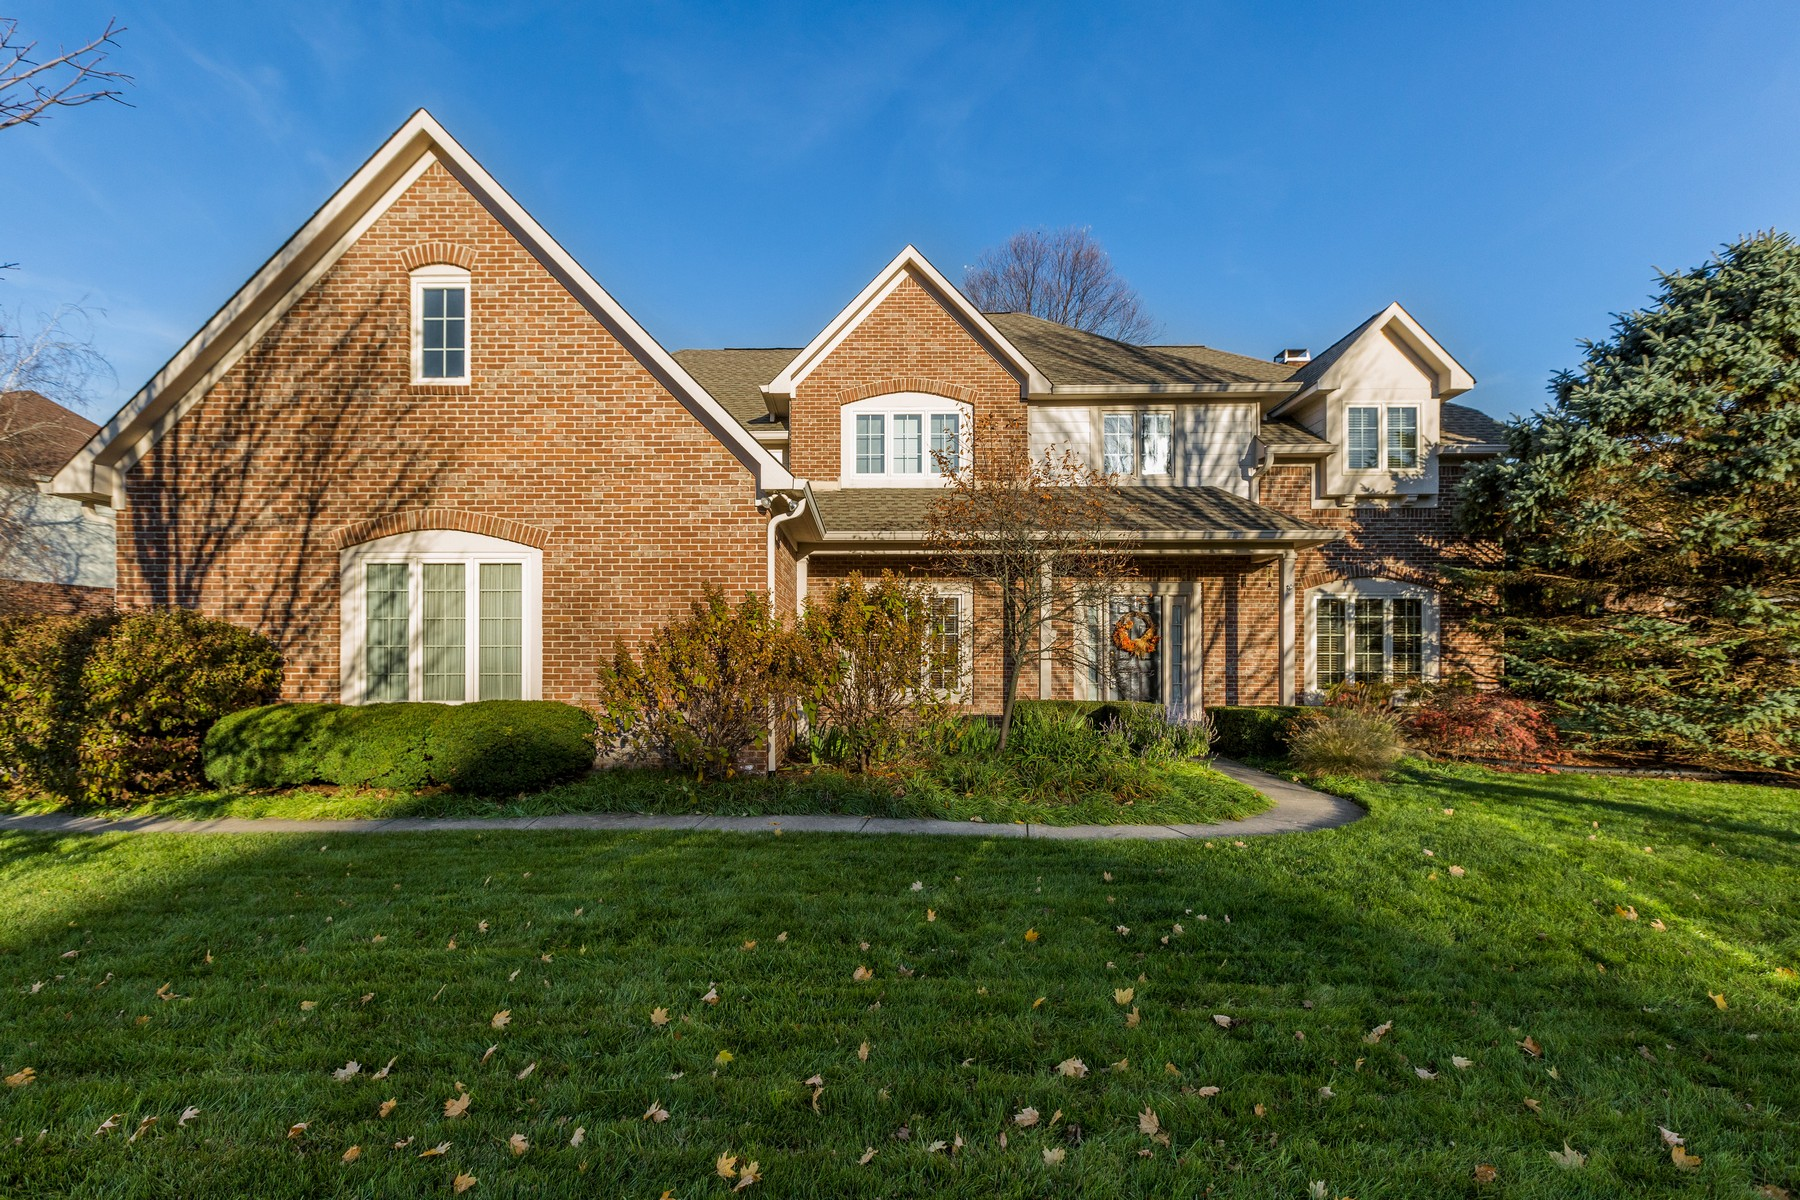 Single Family Home for Sale at Handsome, Executive Residence in Carmel 14175 Avian Way Carmel, Indiana 46033 United States